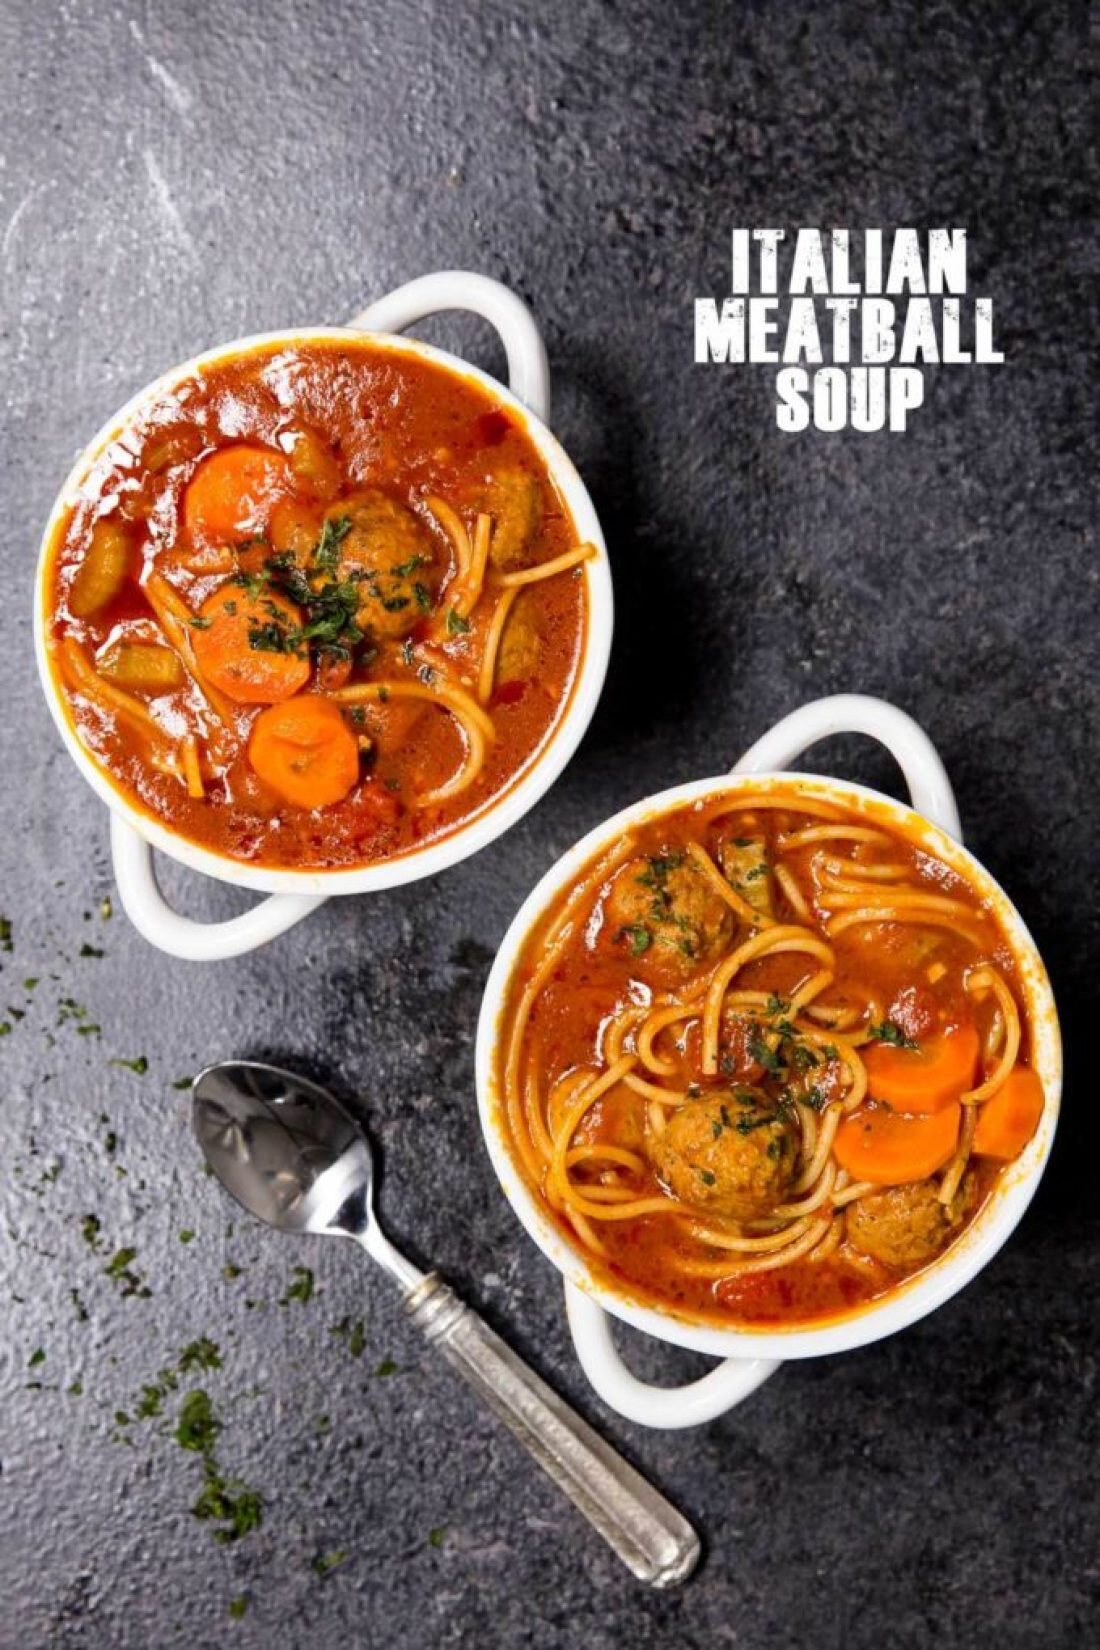 EASY MEATBALL SOUP EASY PEASY MEALS